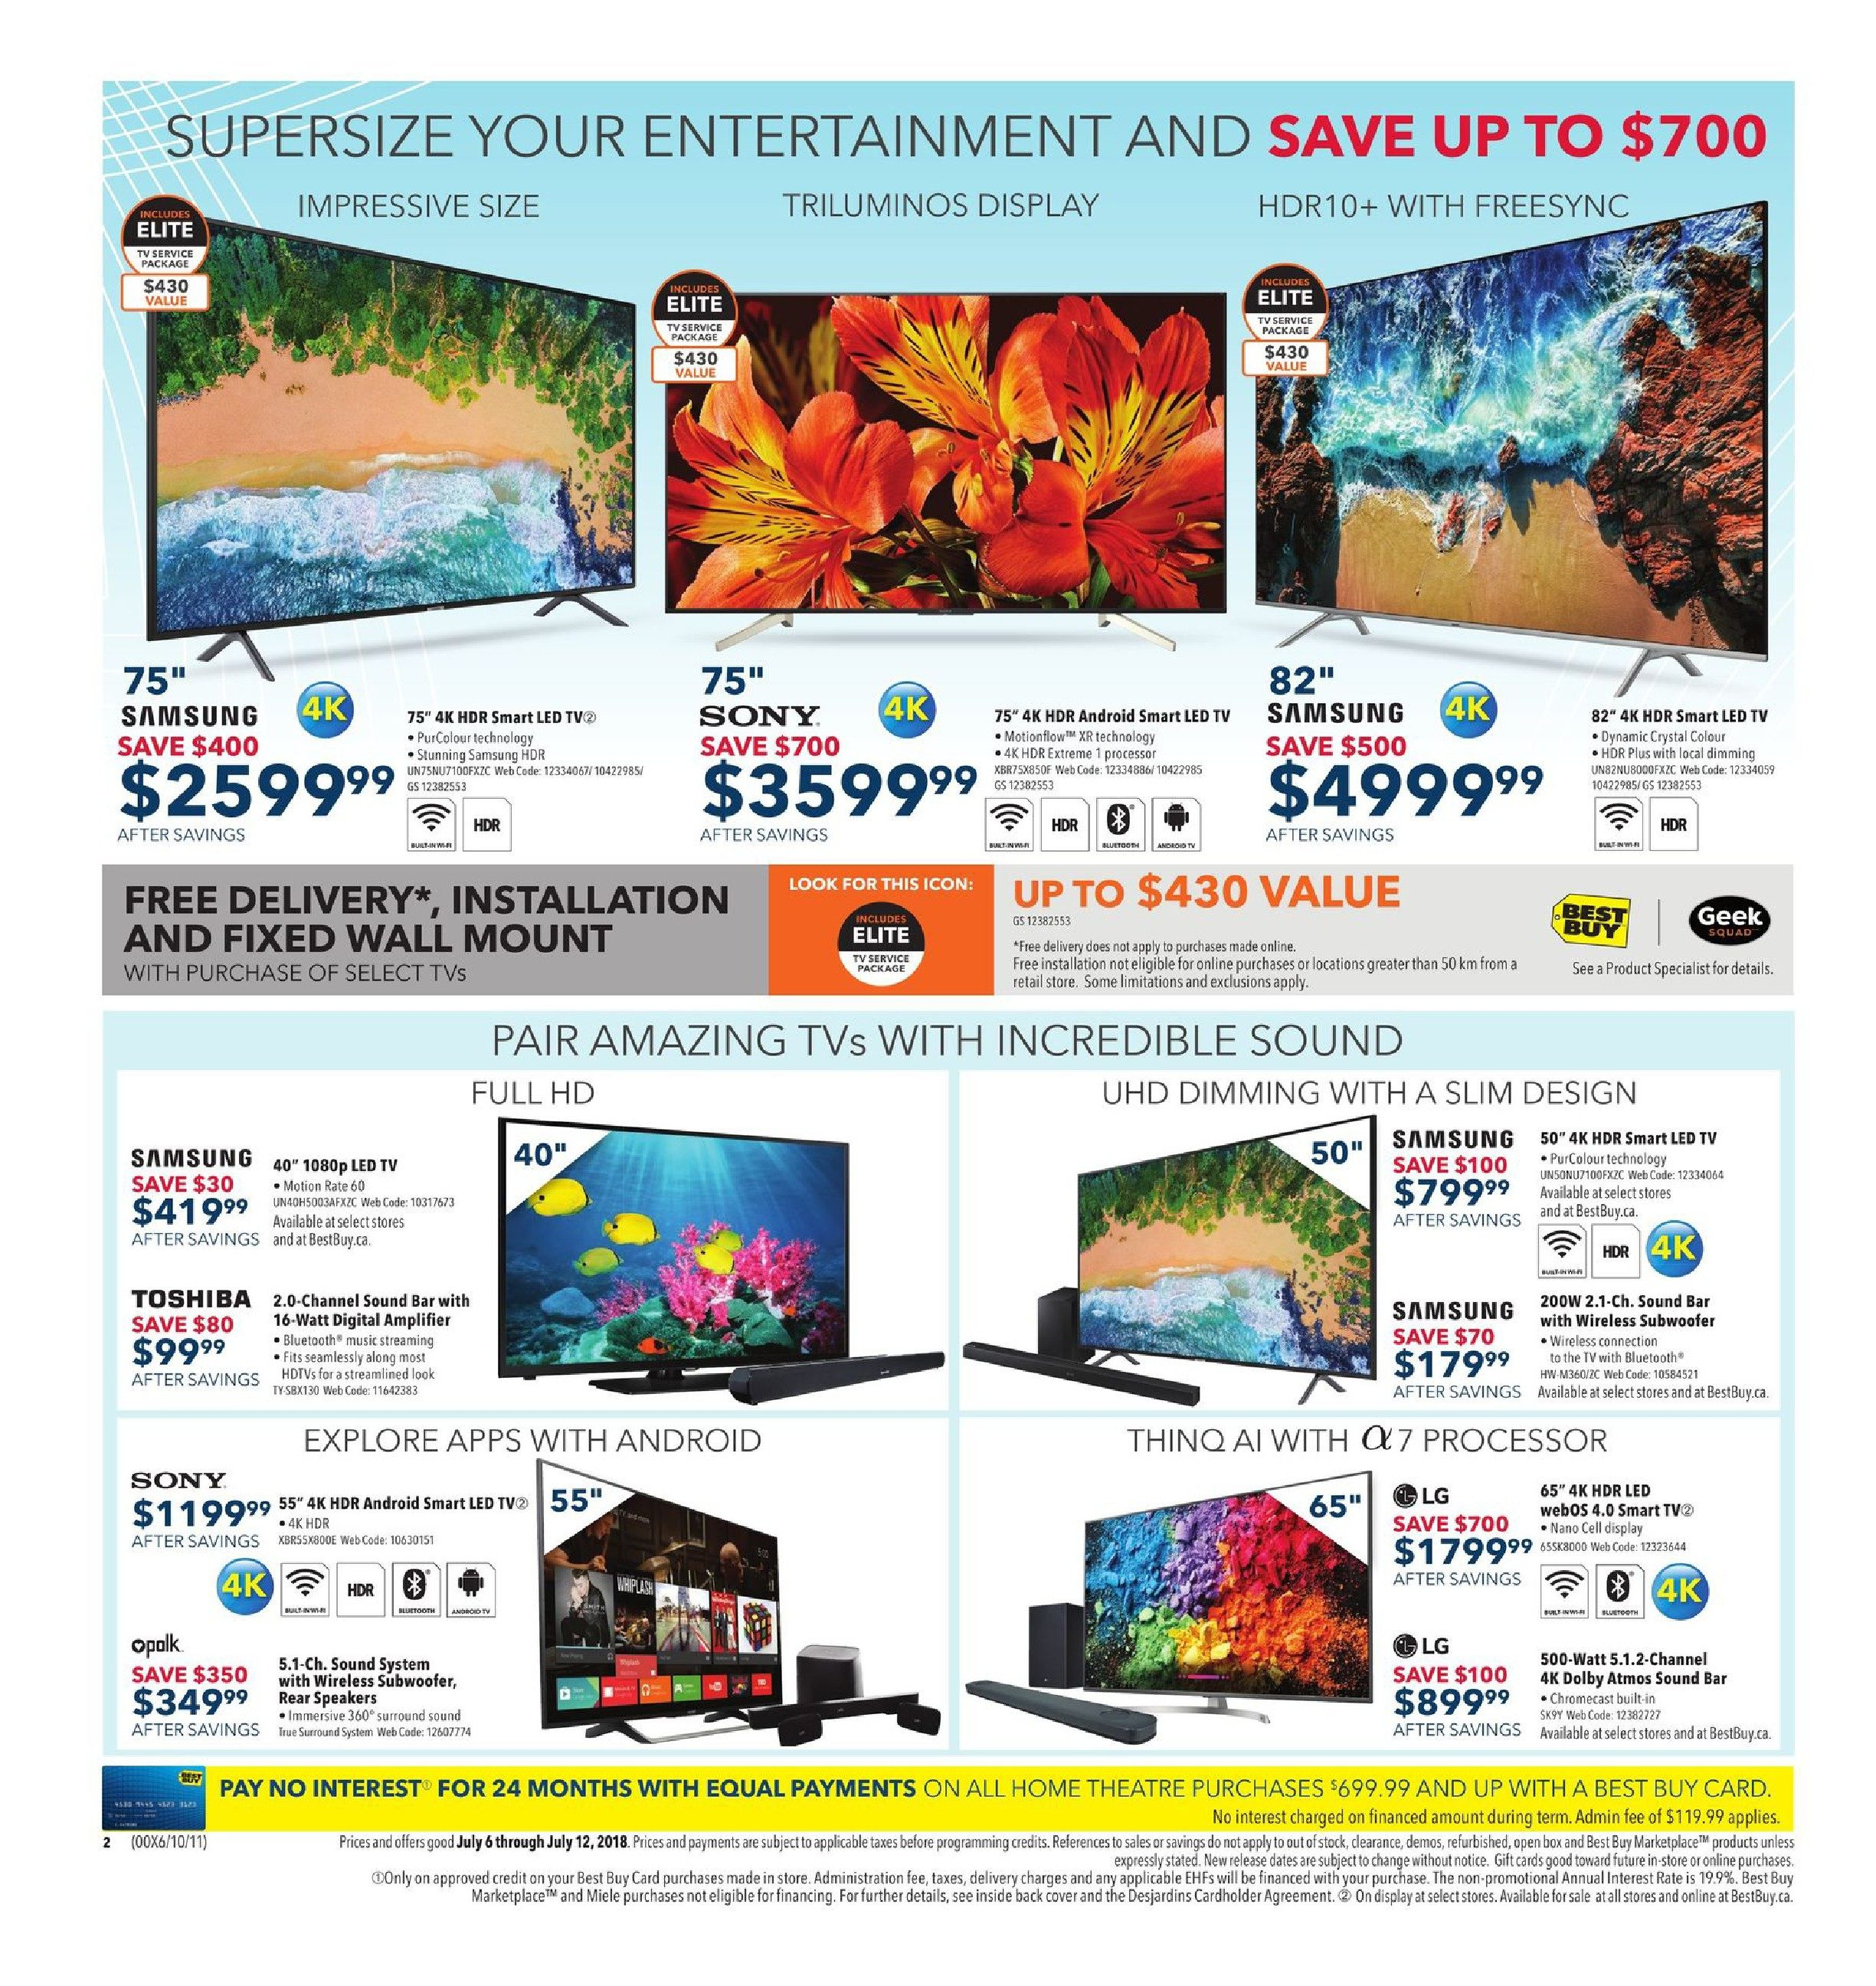 Best buy weekly flyer weekly hot tech at even hotter savings best buy weekly flyer weekly hot tech at even hotter savings jul 6 12 redflagdeals fandeluxe Image collections